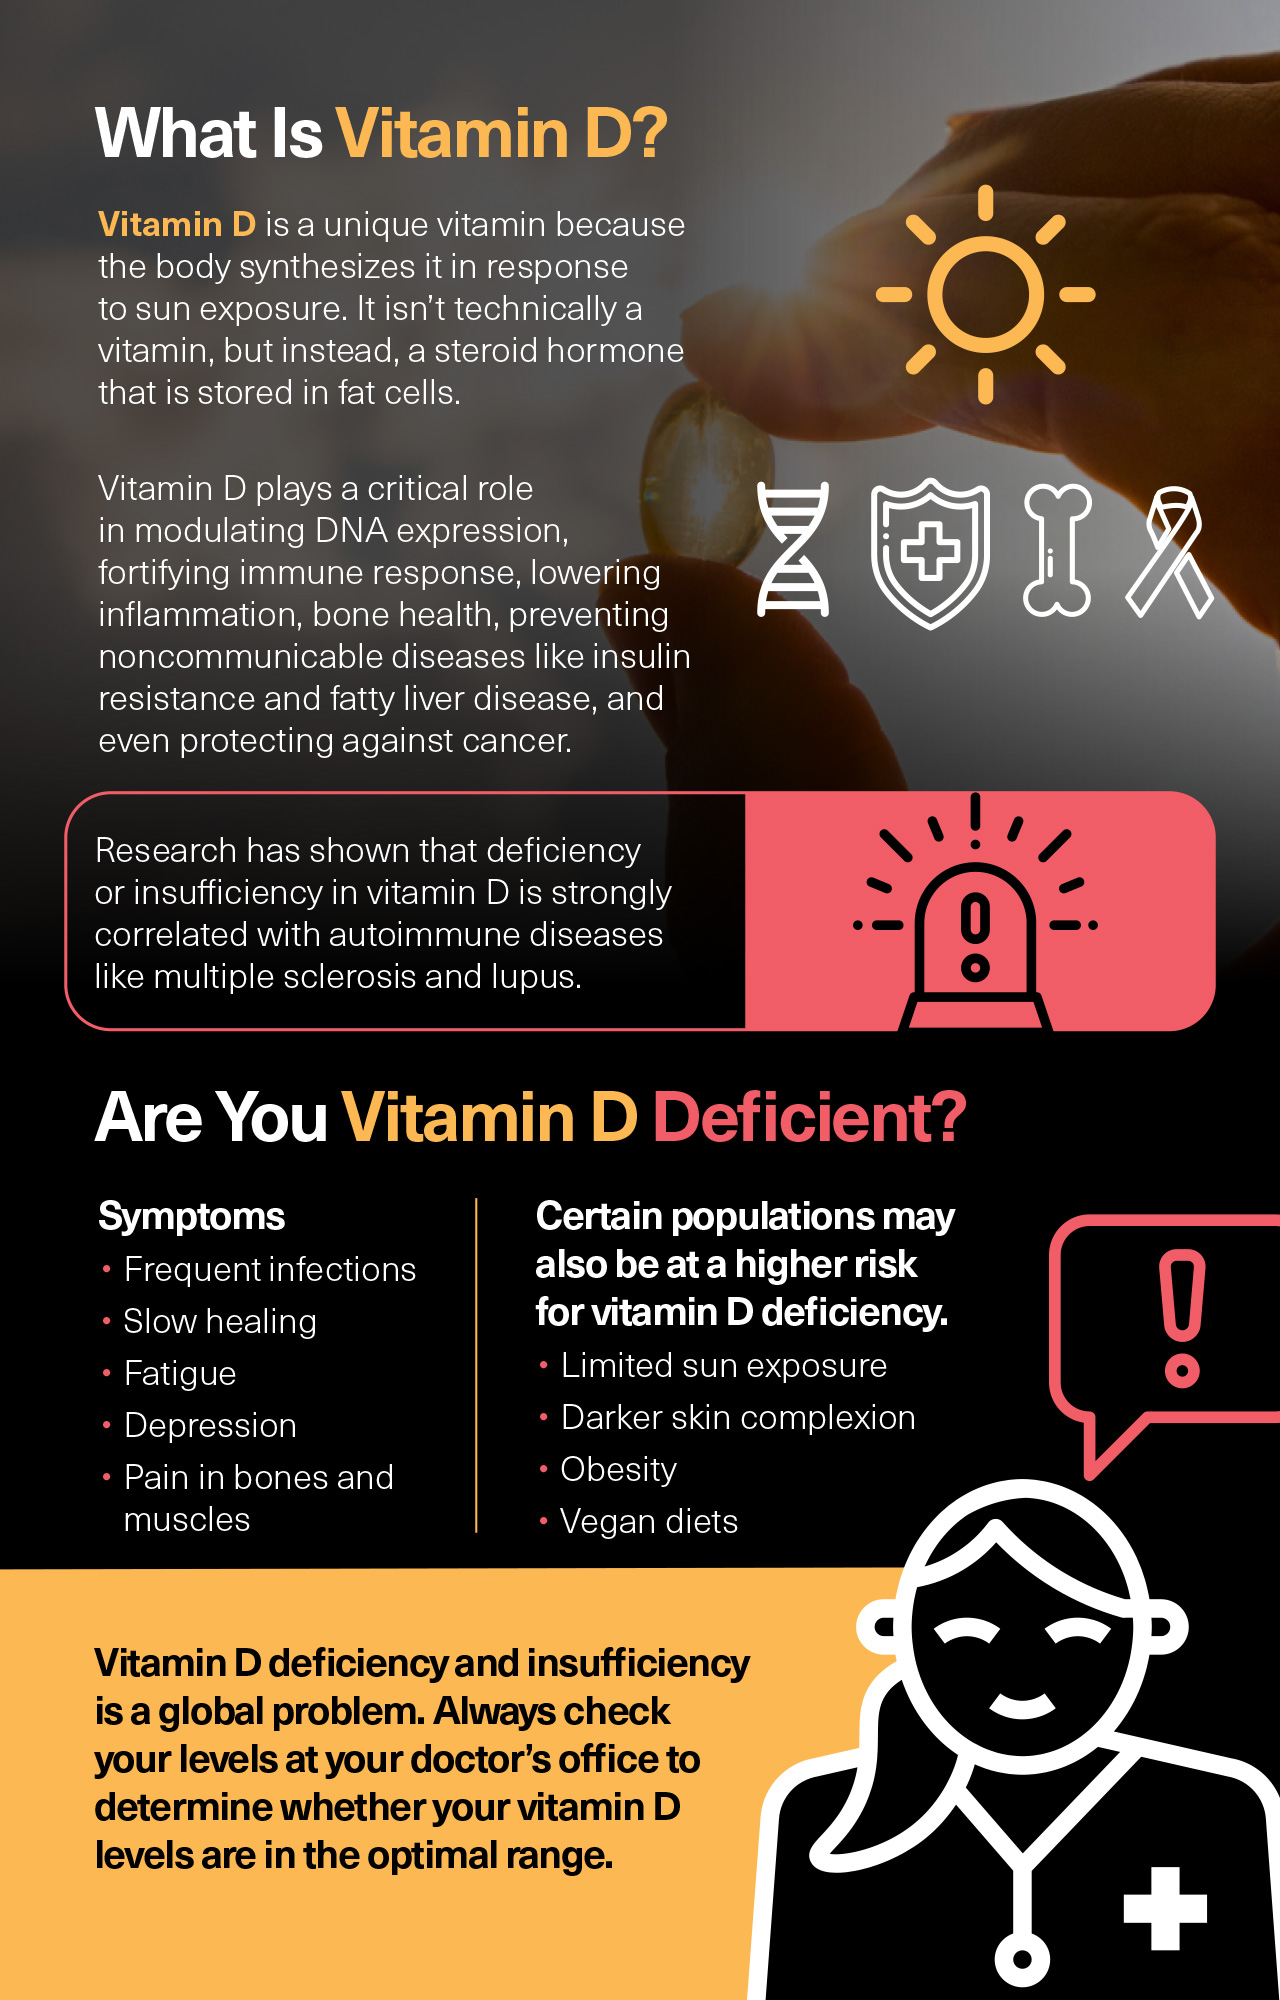 What Is Vitamin D?